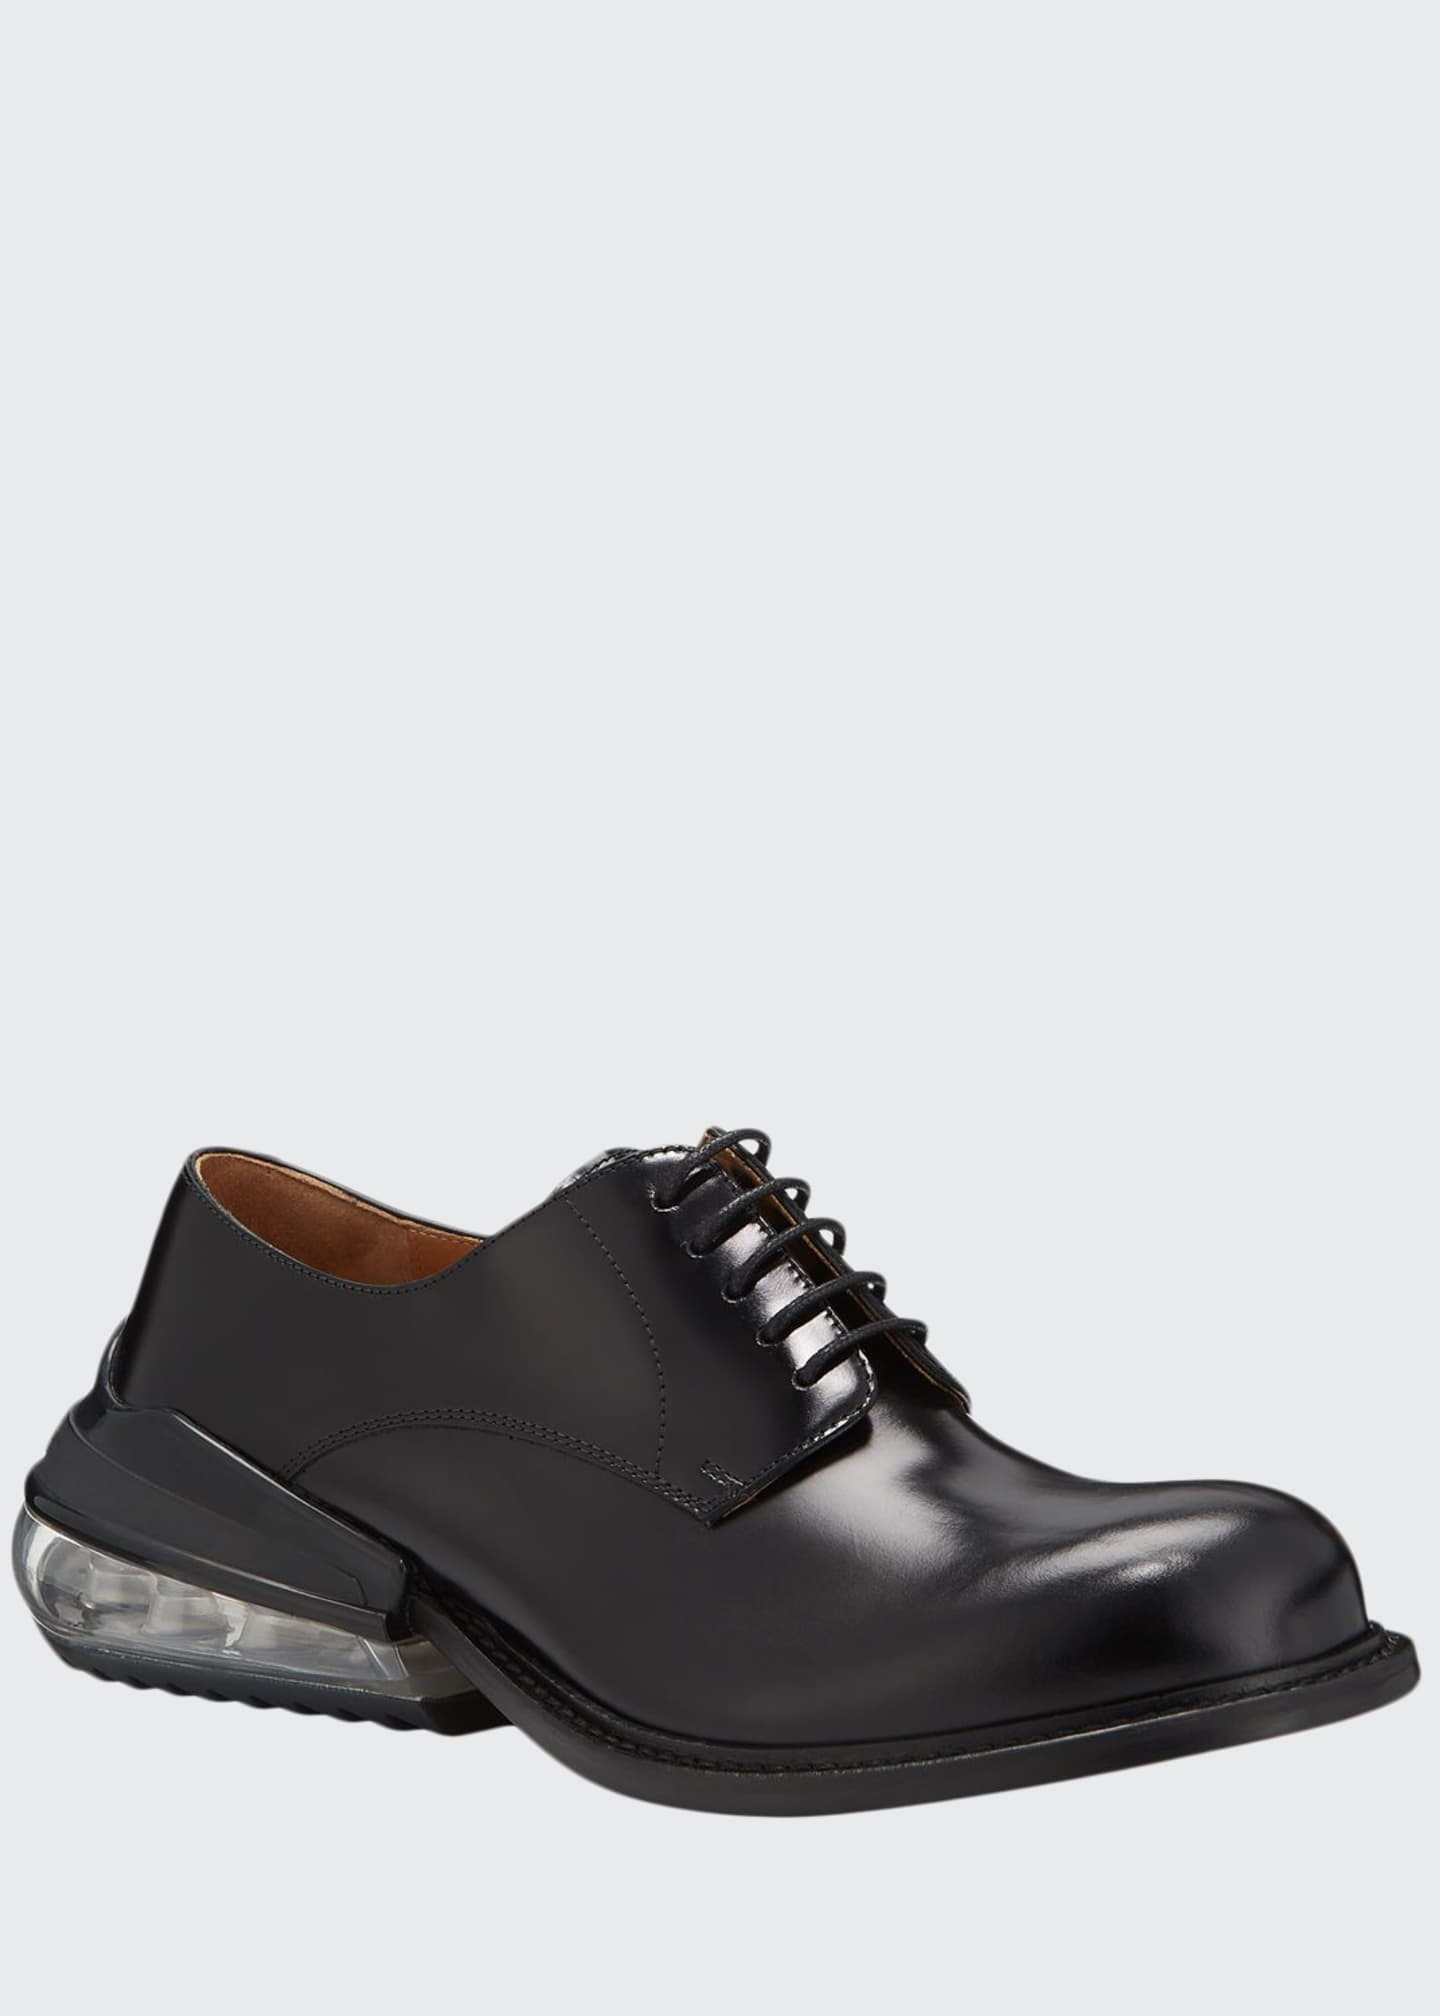 Image 1 of 5: Men's Airbag Clear-Heel Leather Derby Shoes